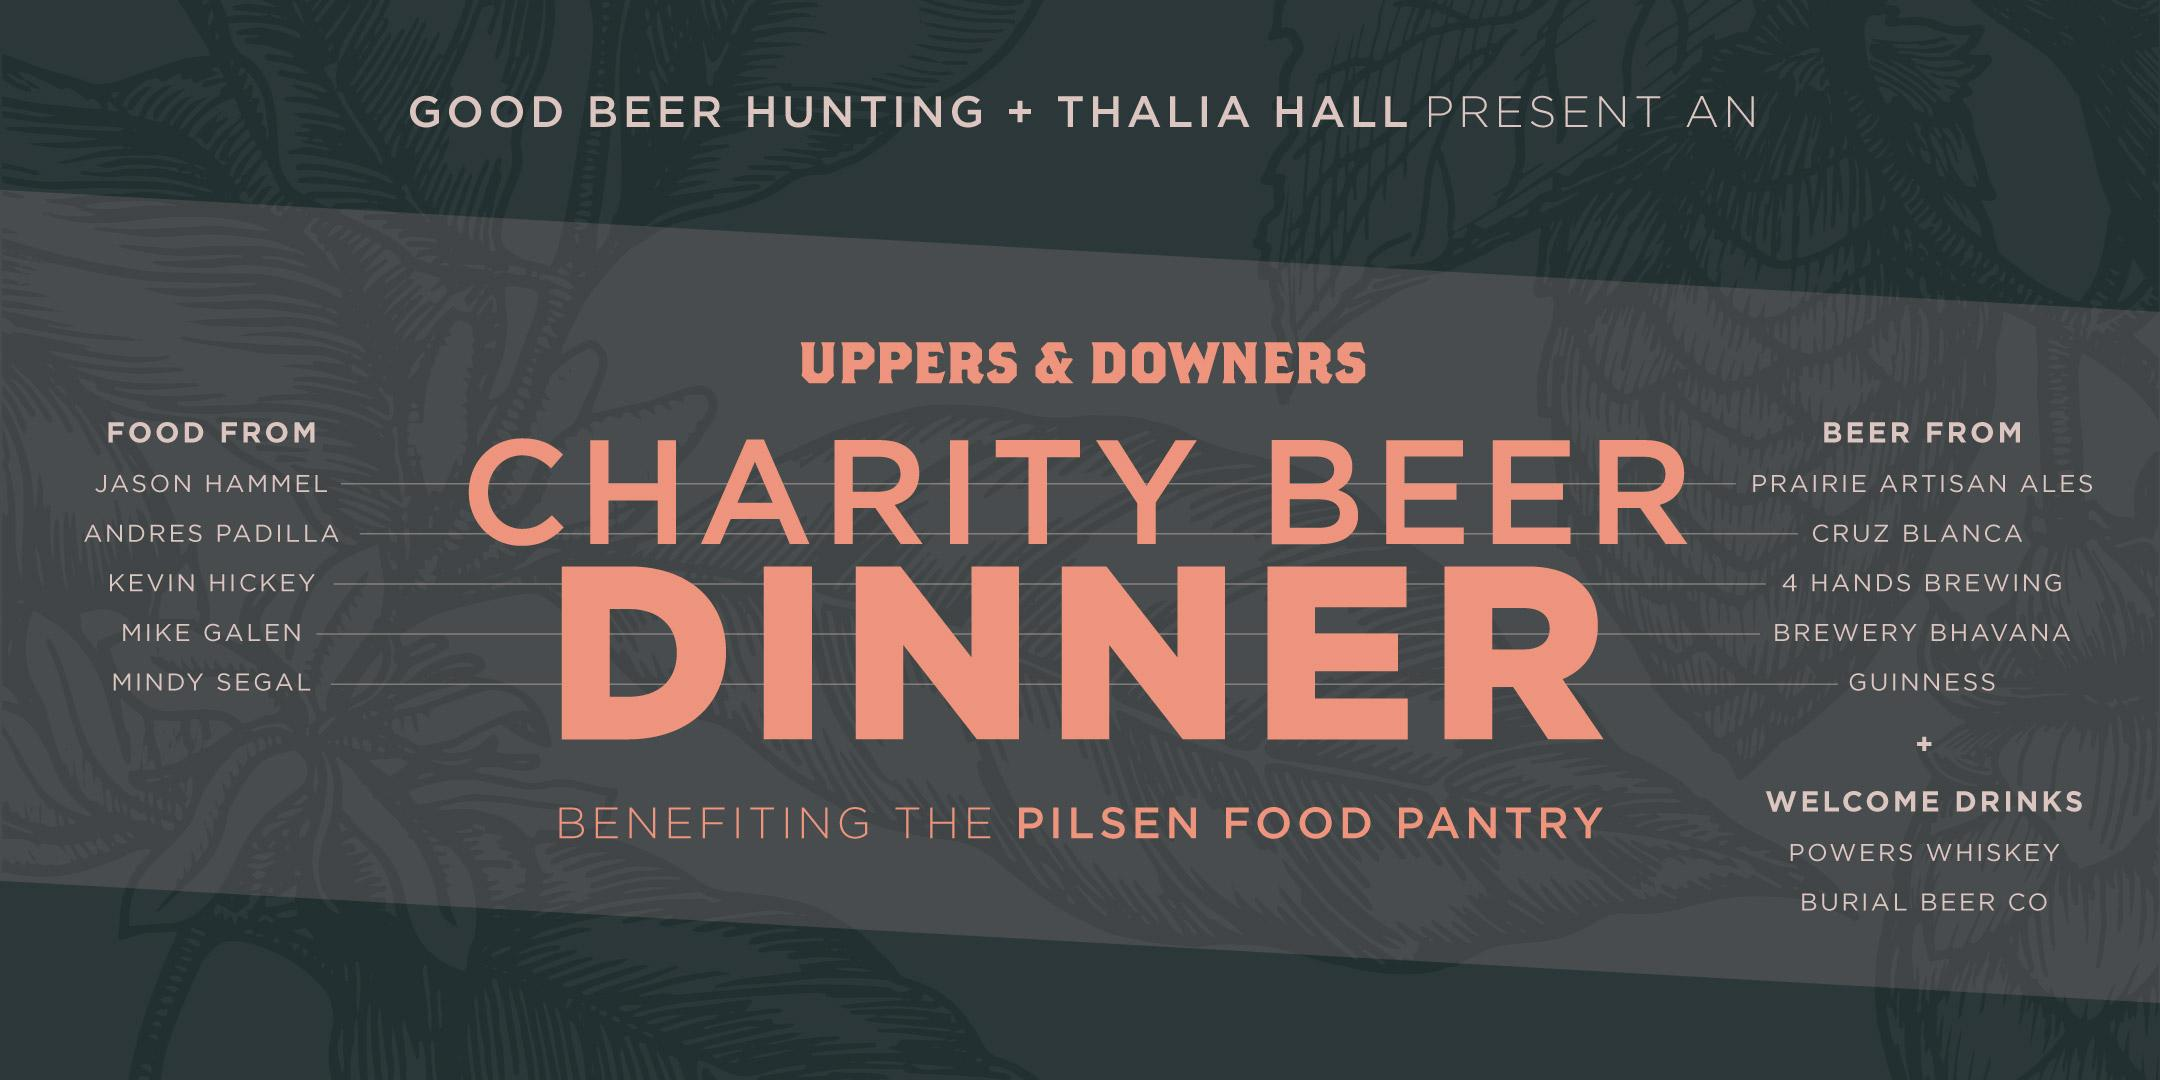 Uppers & Downers Chef's Beer Dinner @ Thalia